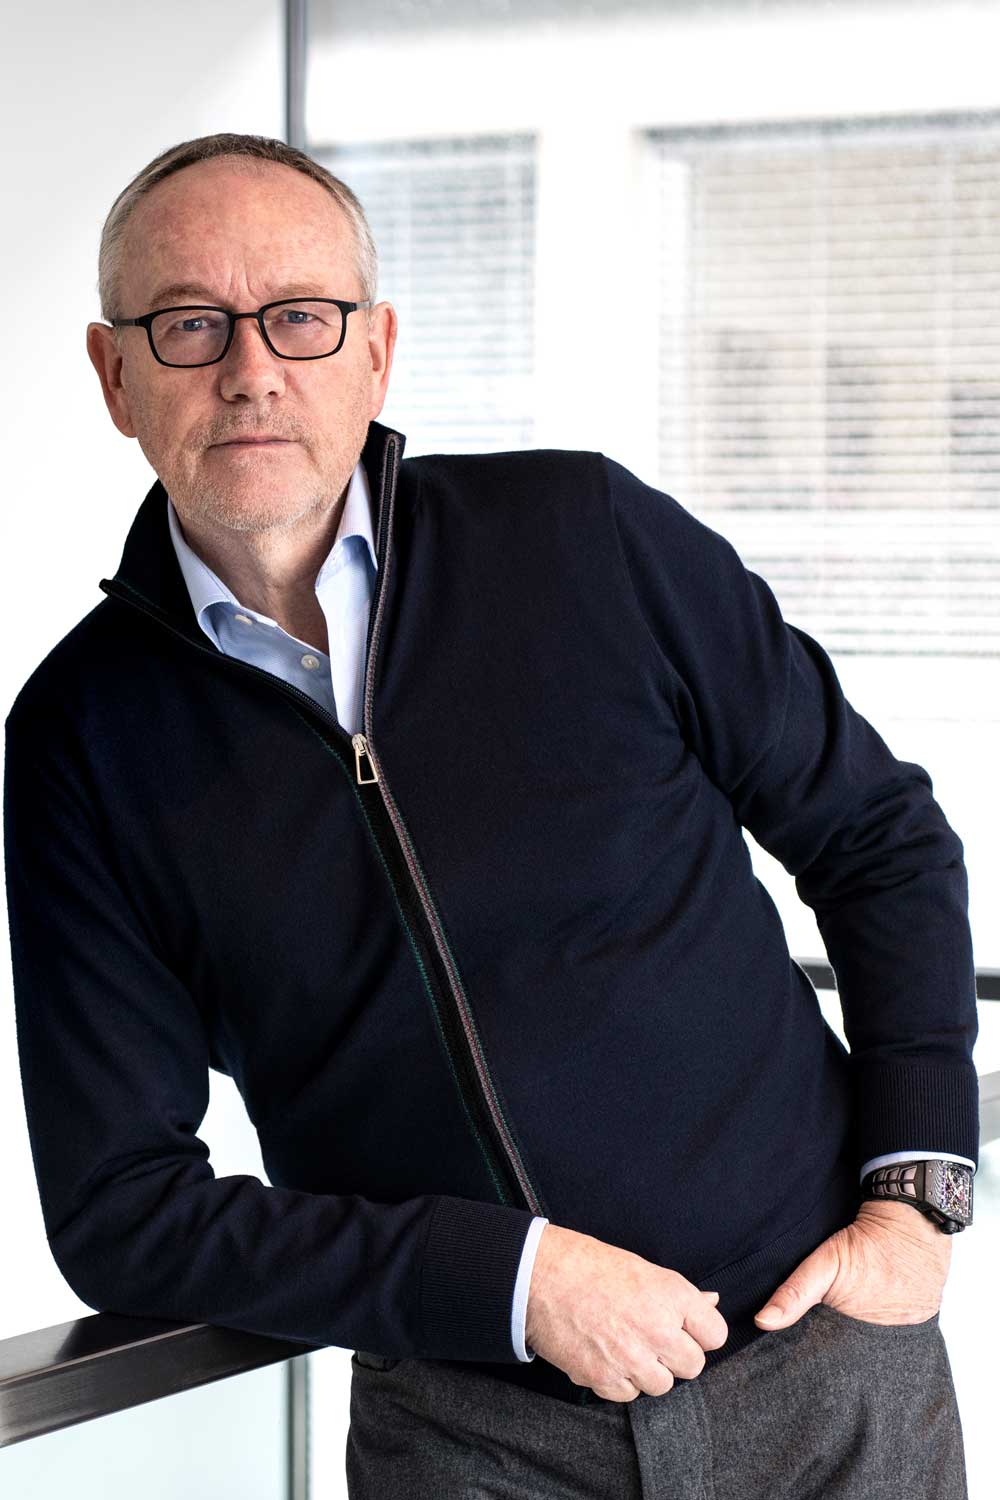 Dominique Guenat, Richard Mille co-founder and co-president